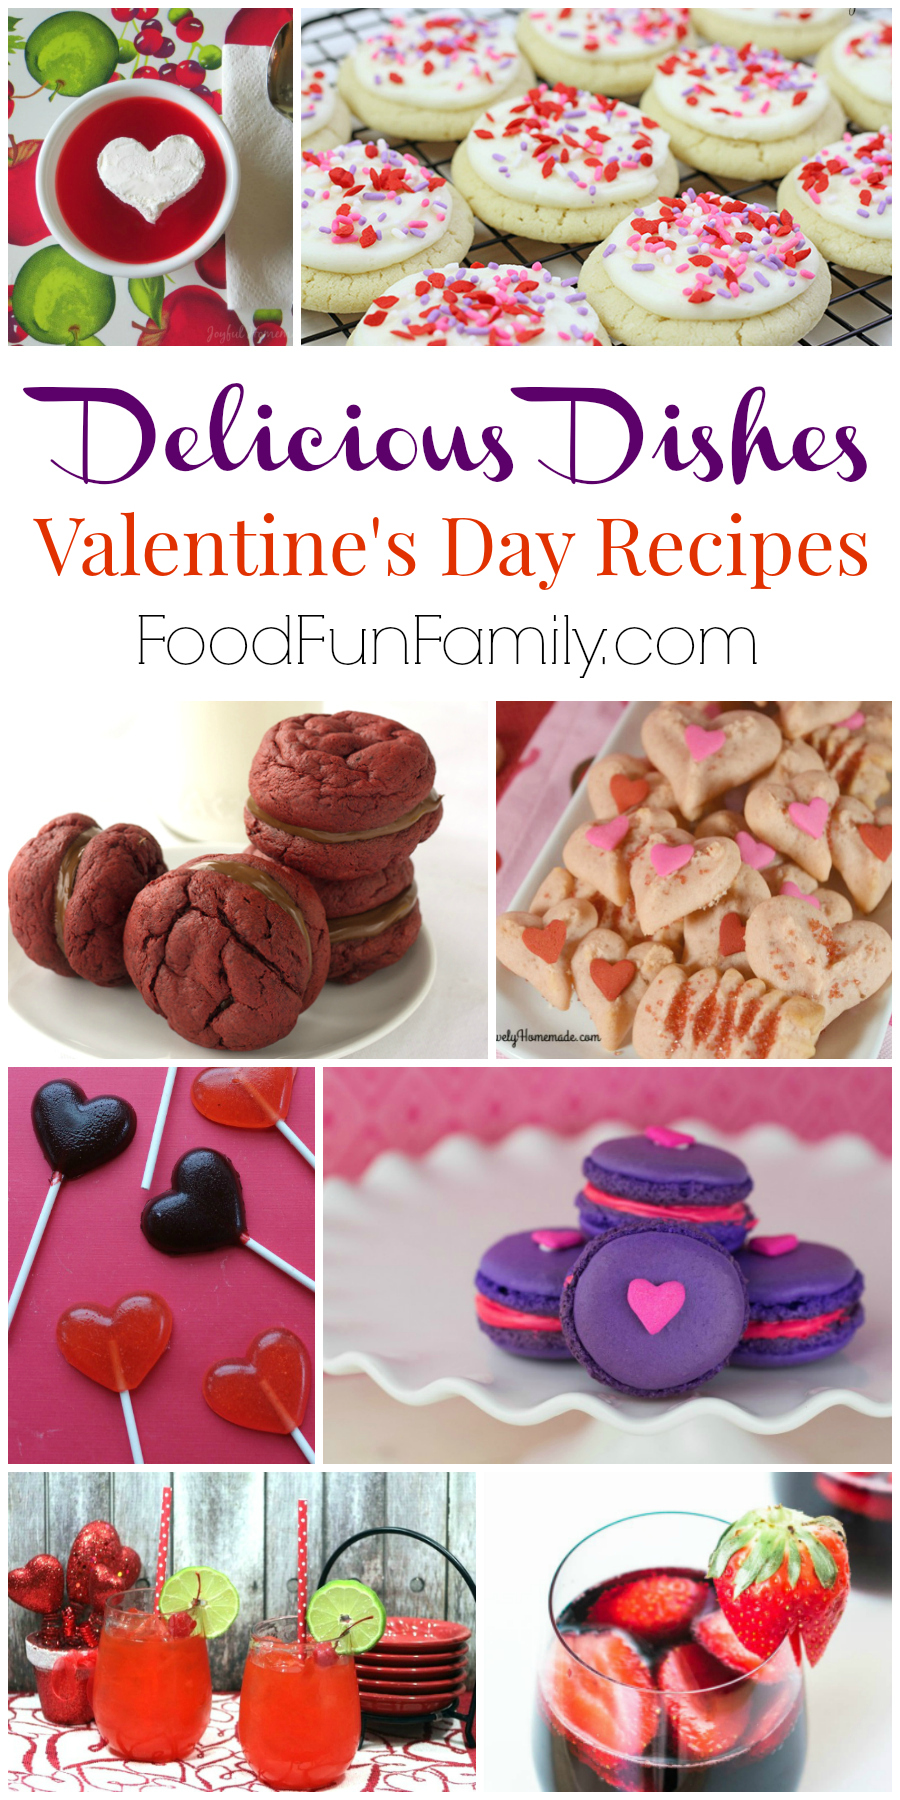 Fun and festive Valentine's Day Recipes from Delicious Dishes